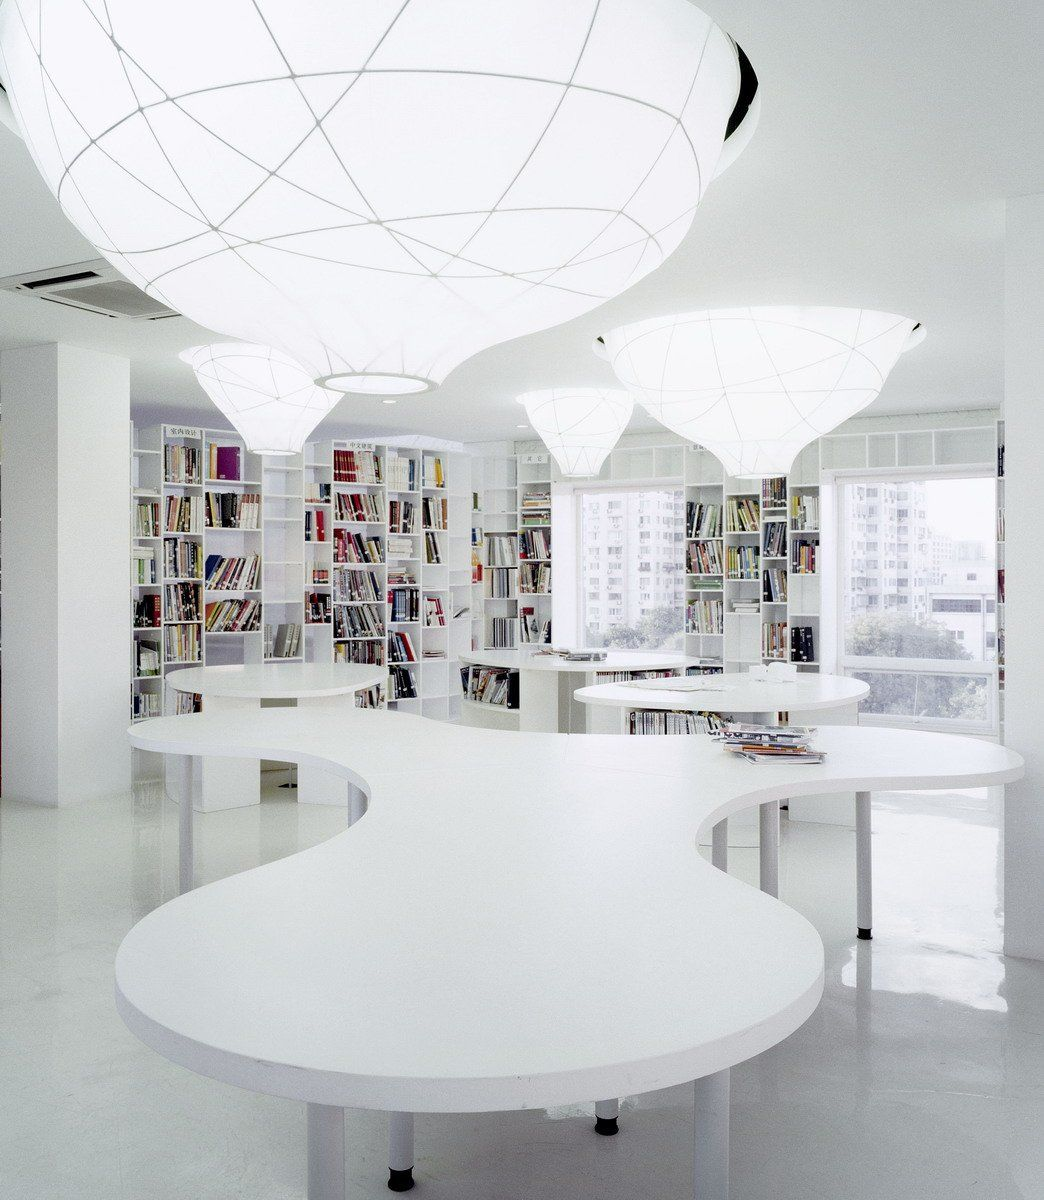 interior office design design interior office 1000. Interior Design Small Space Office Layout, Modern And Elegant Work Design, Contemporary White Library, 1000 F